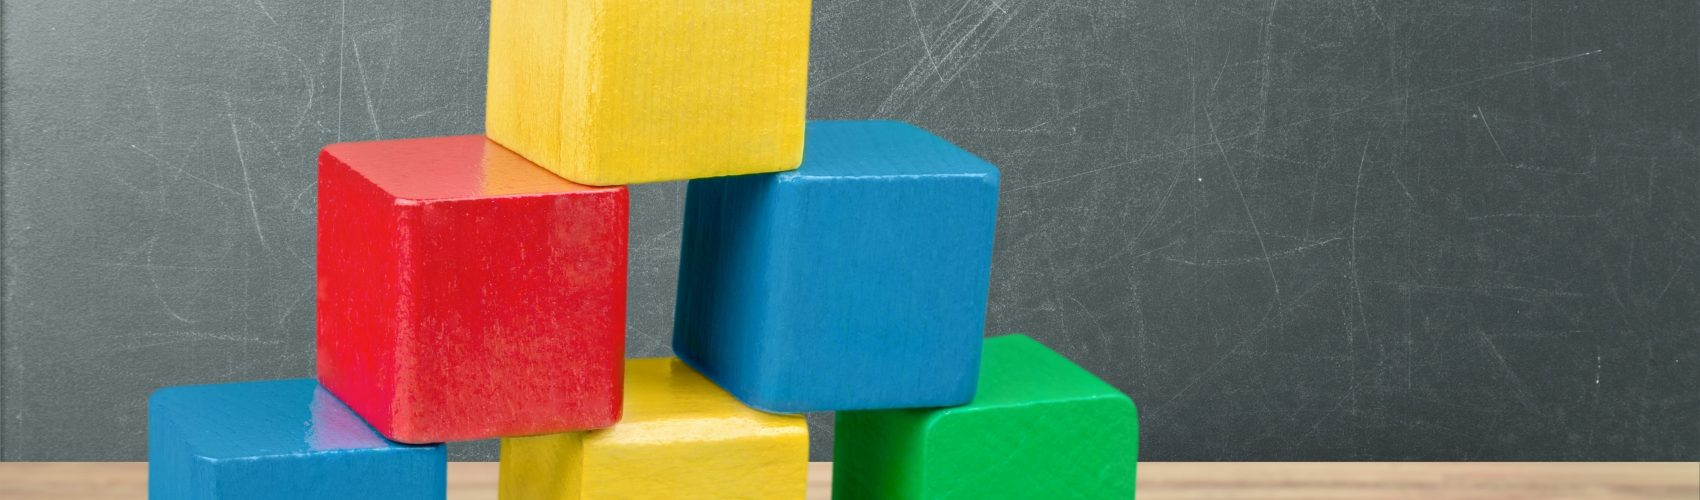 building blocks stacked